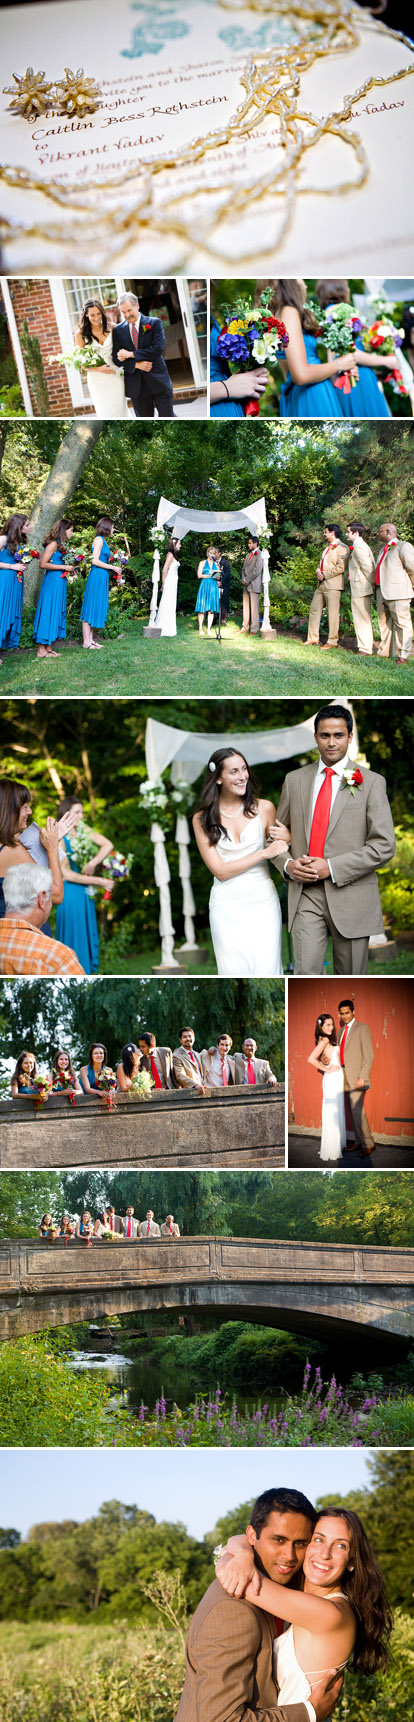 Summer backyard family wedding in Pennsylvania, red, teal and peacock blue wedding color palette, images by Jihan Abdalla